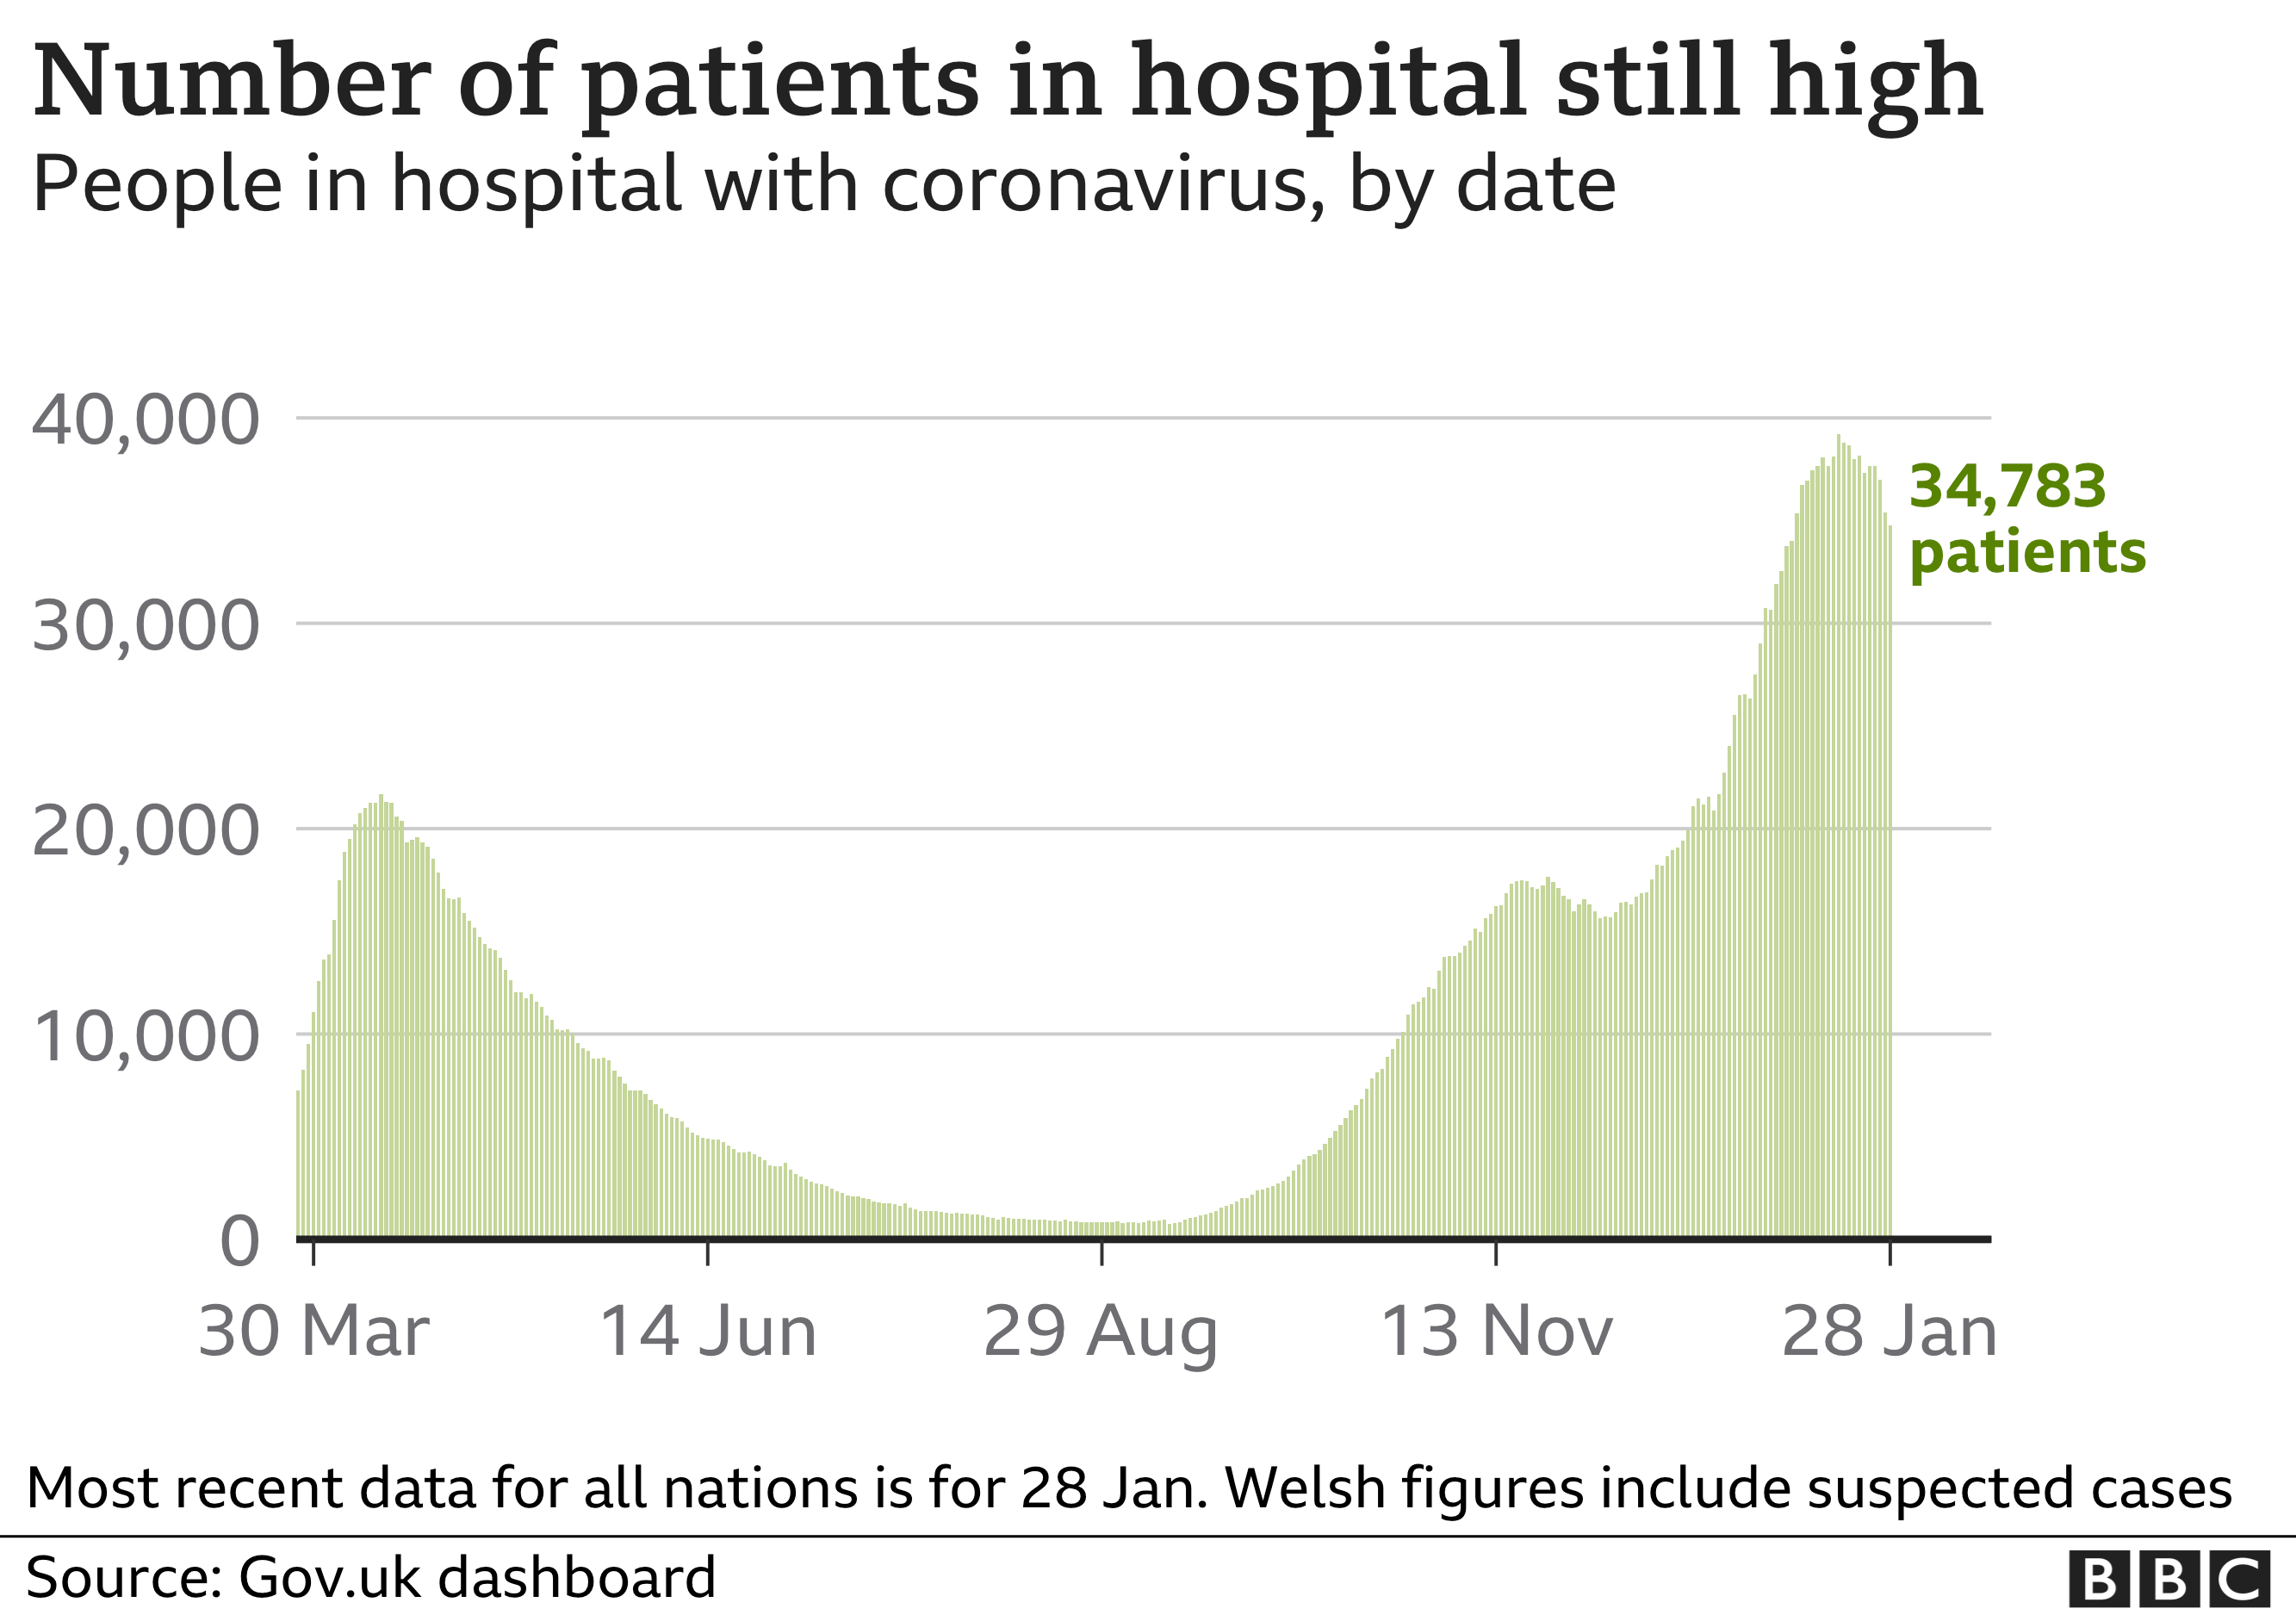 A graph showing the number of Covid patients in hospital